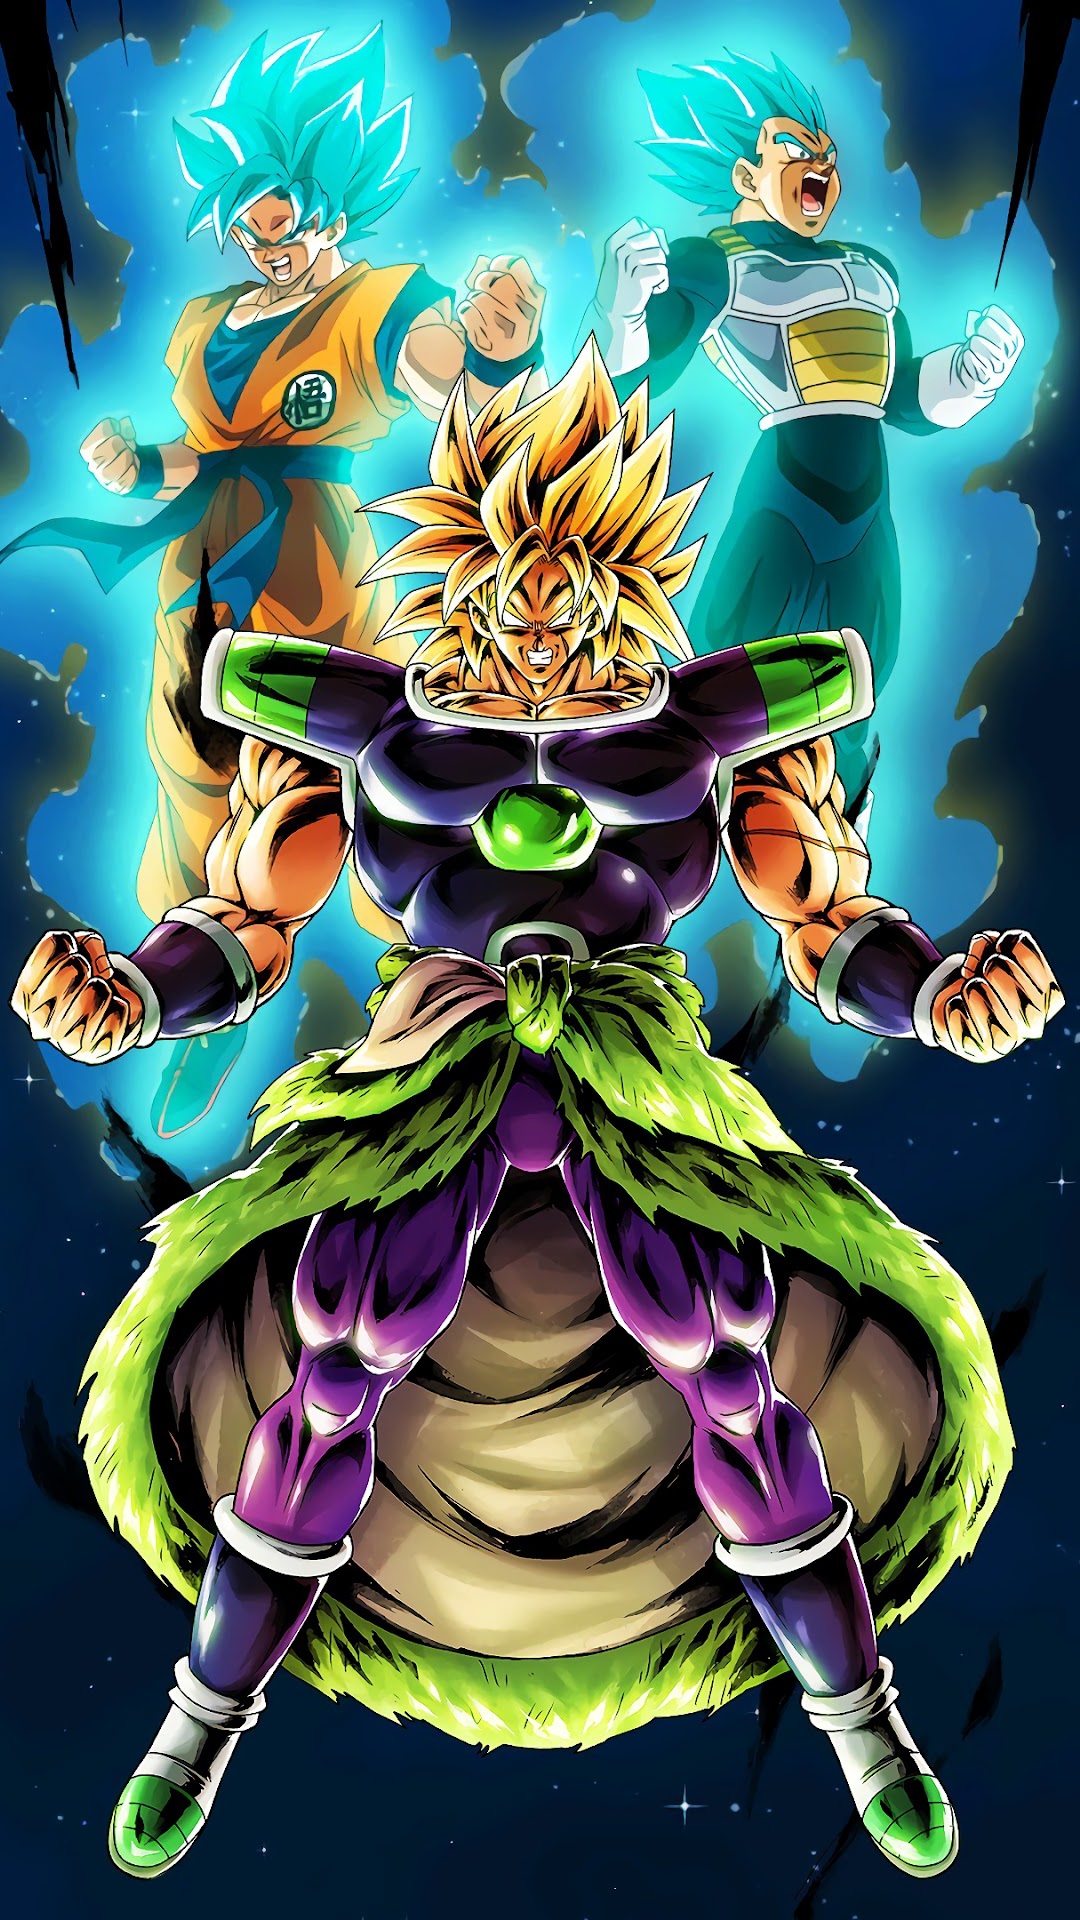 Download S10 Wallpaper Dragonball Cikimm Com